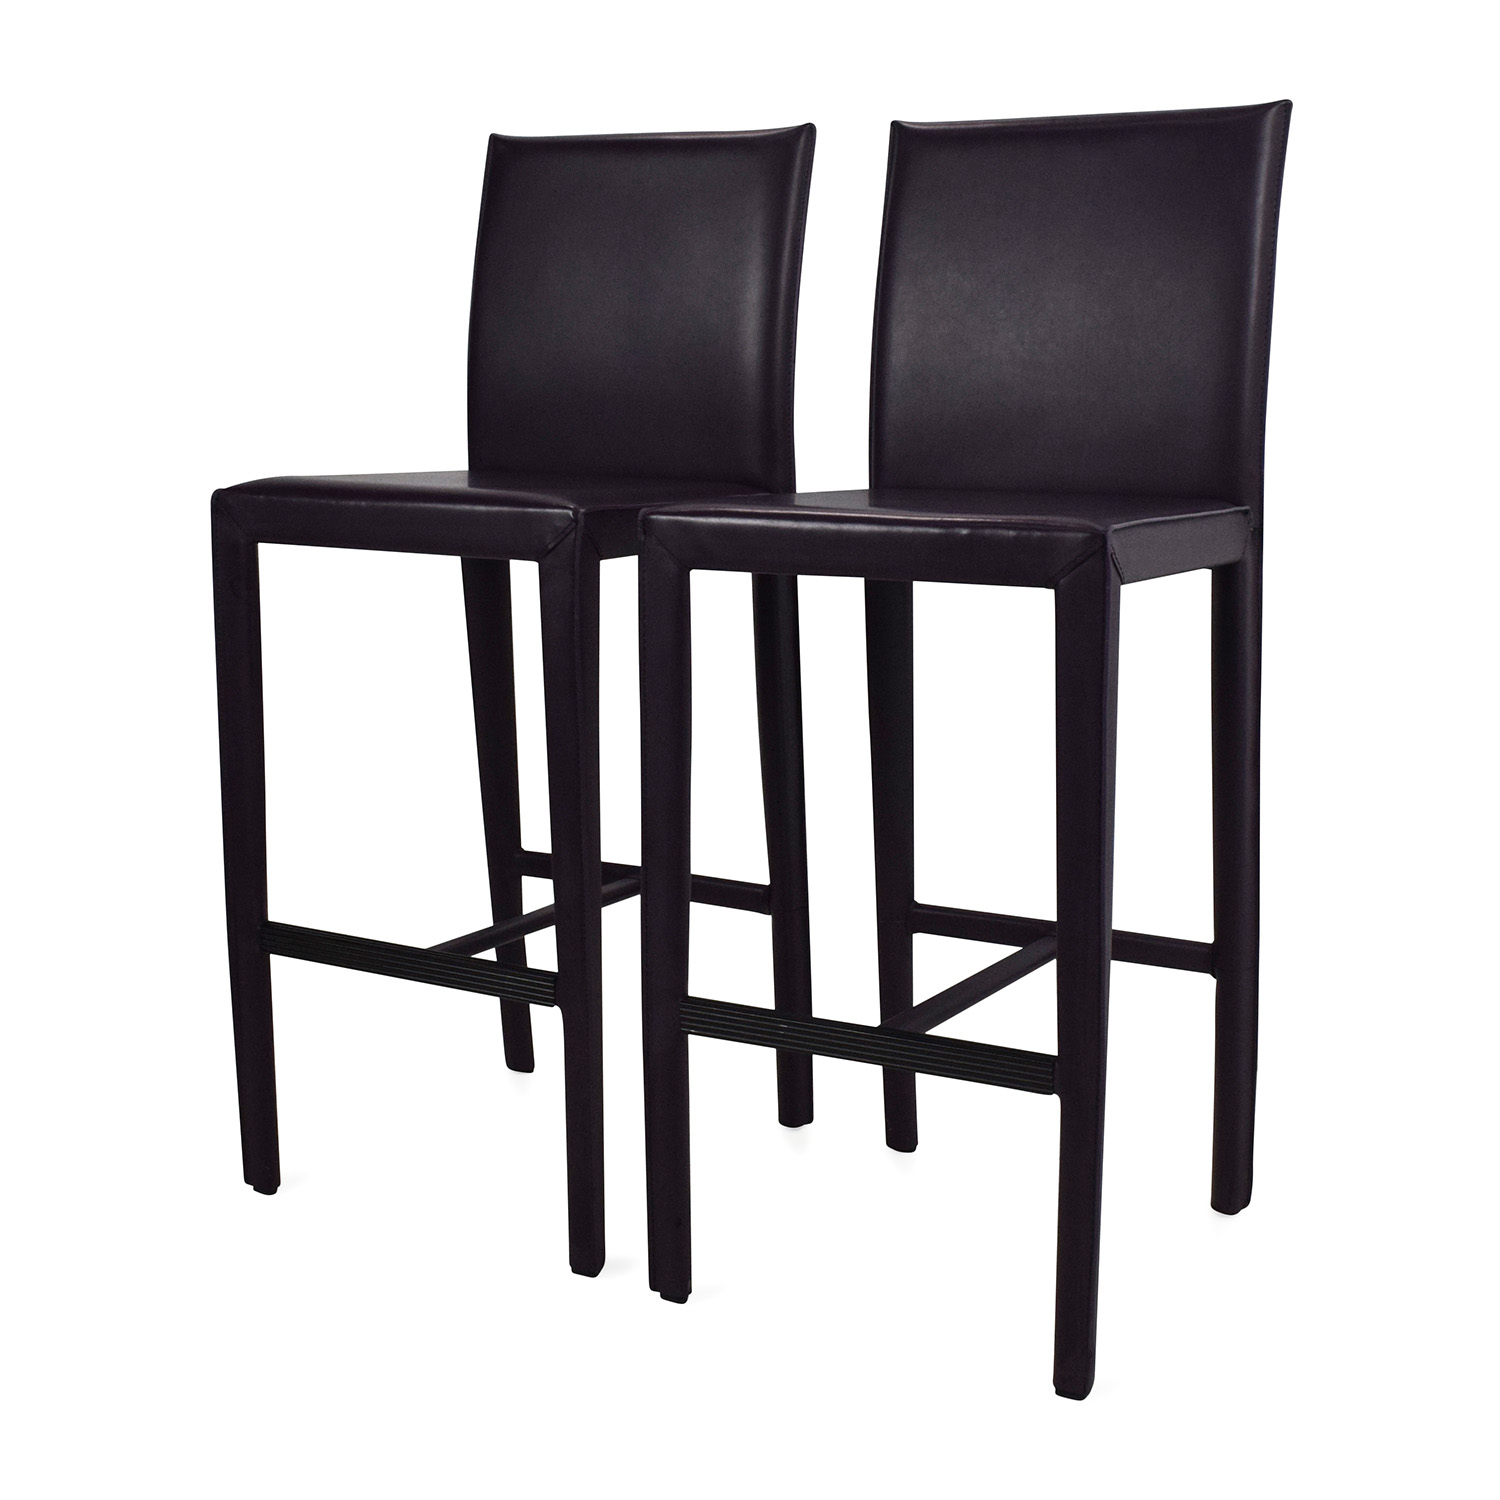 61% OFF Crate and Barrel Crate & Barrel Folio Leather Barstools